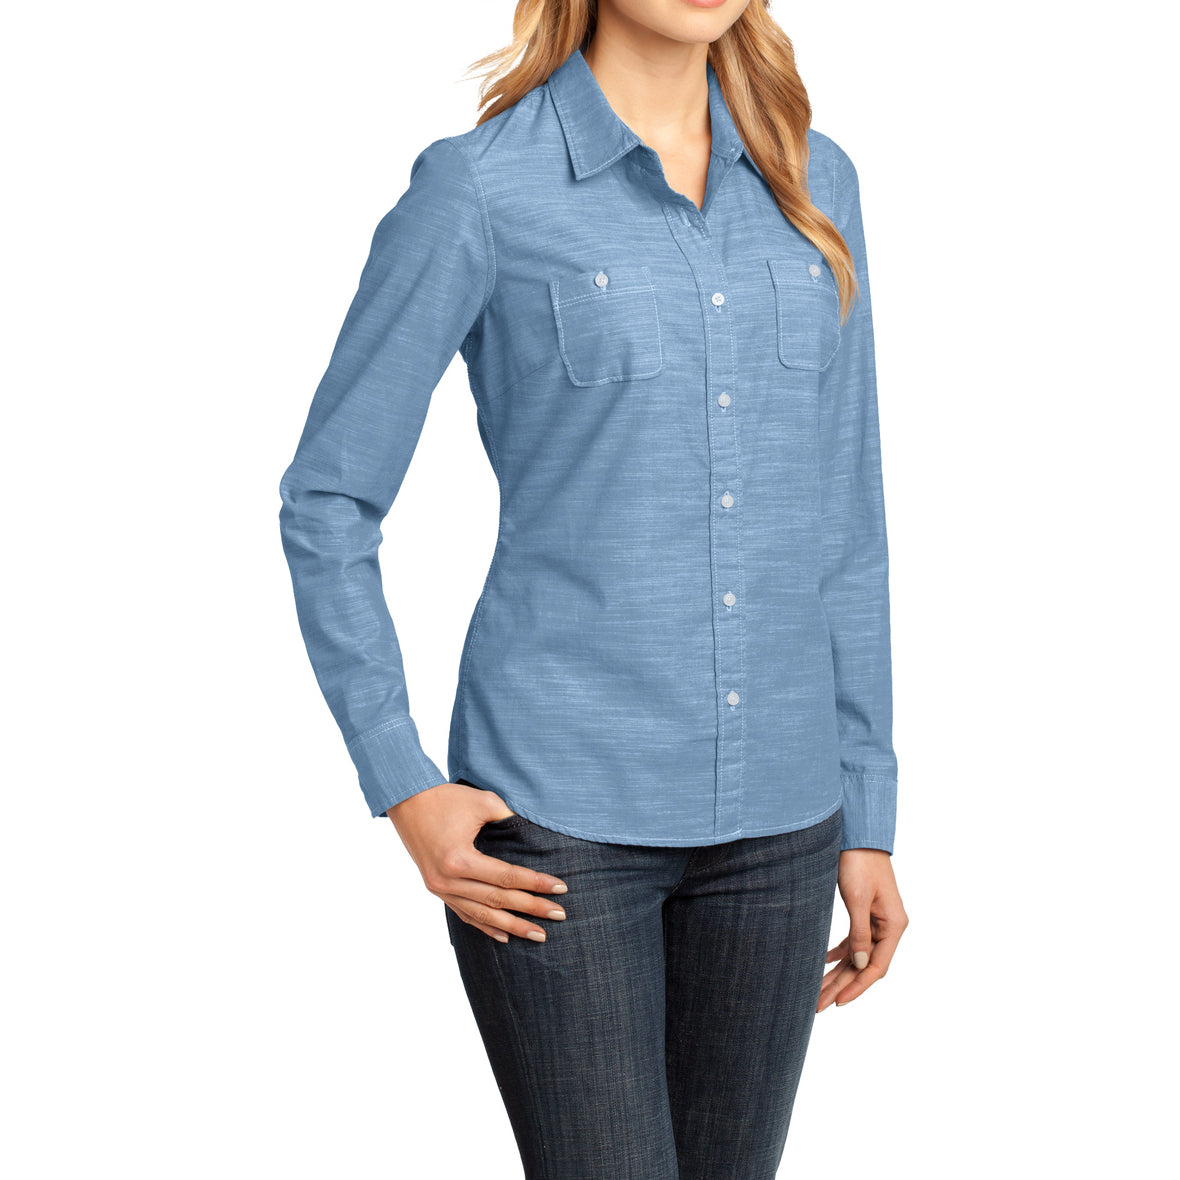 Womens Long Sleeve Washed Woven Shirt - Light Blue - Side